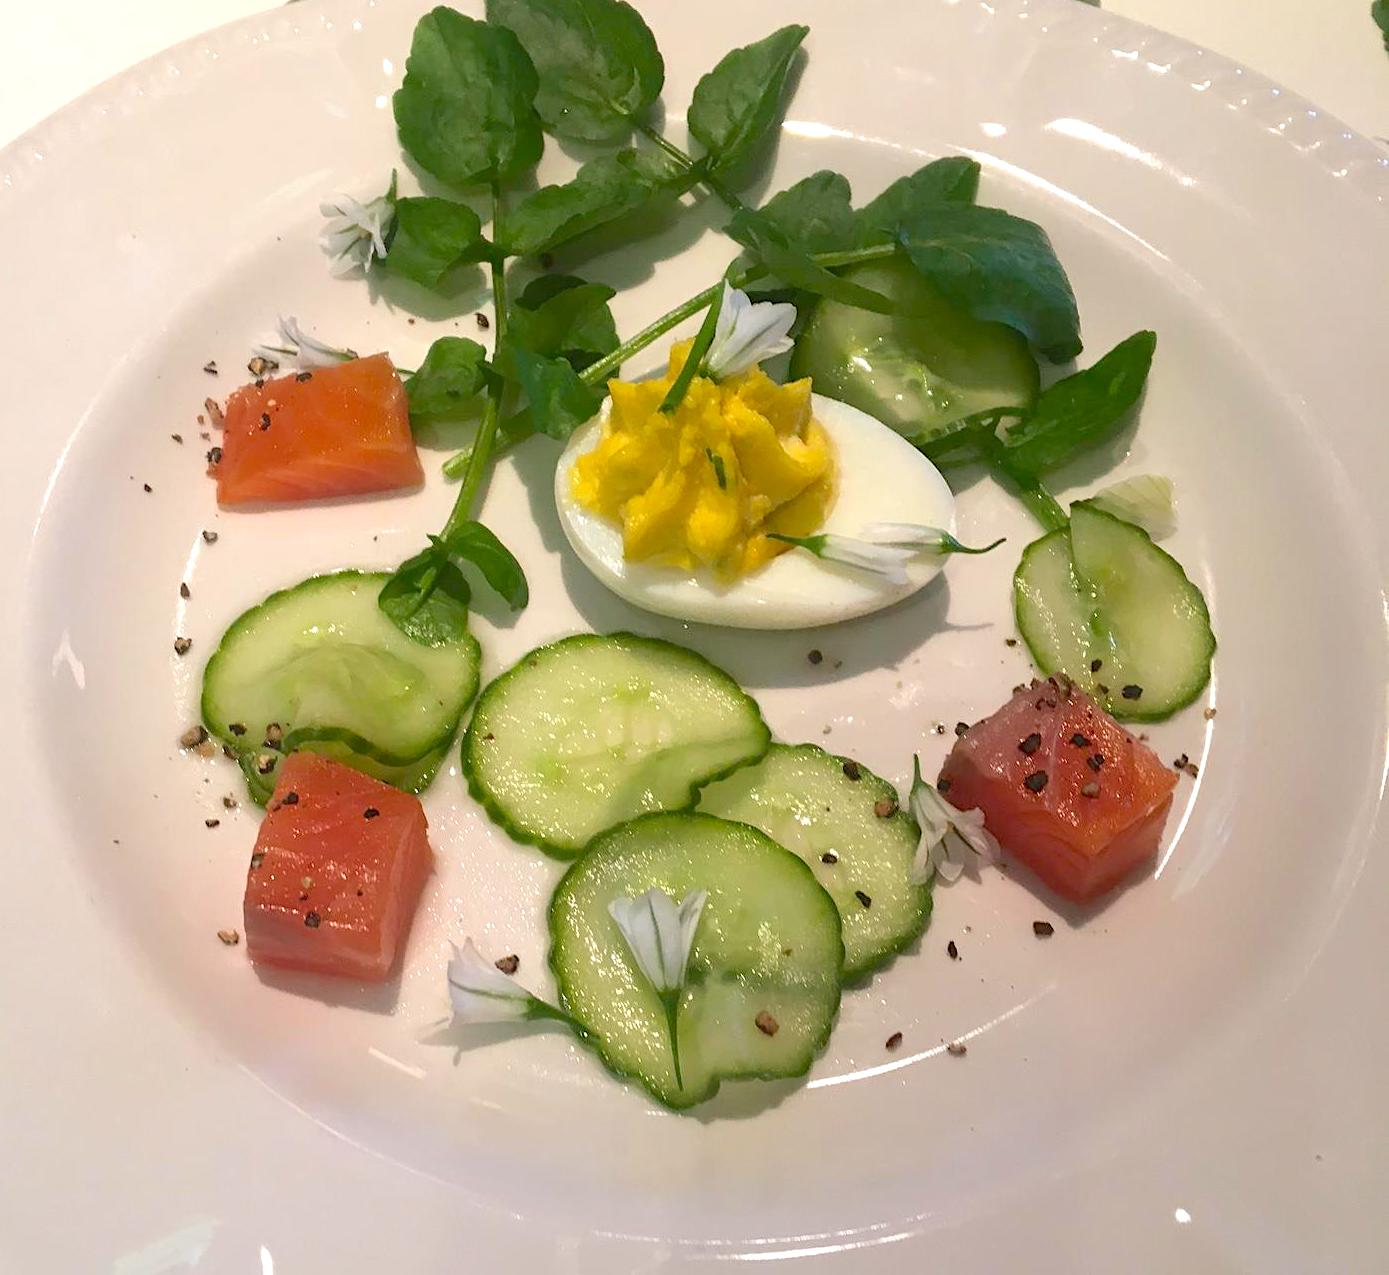 Devilled eggs with salmon scattered with wild garlic flowers